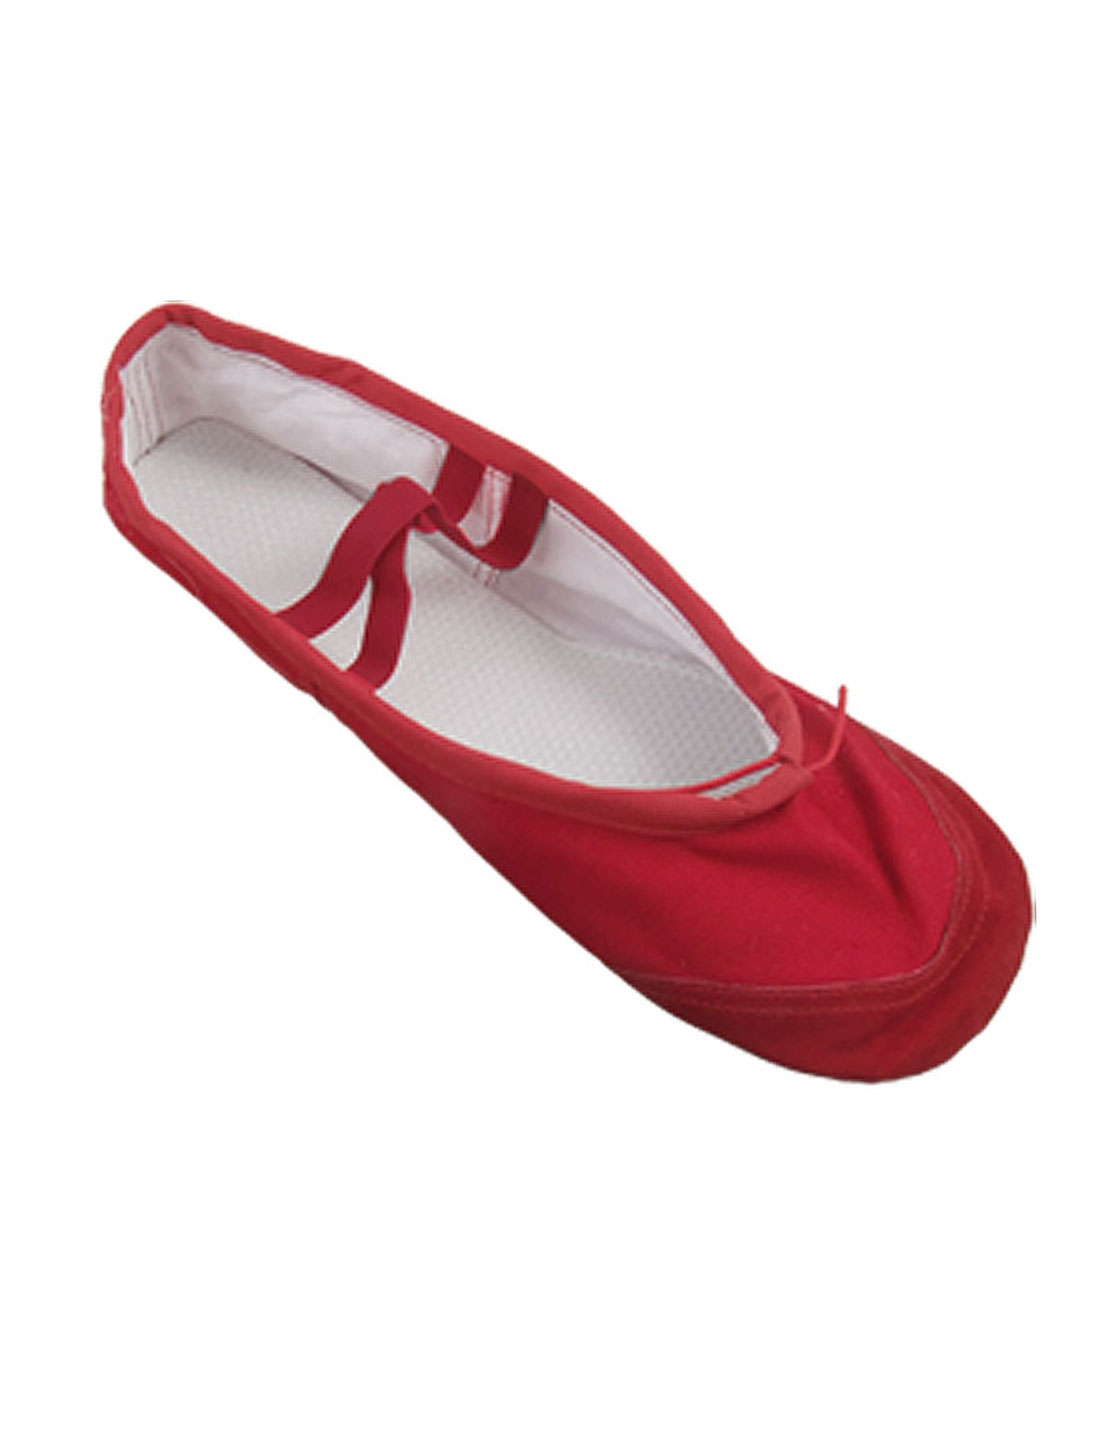 Girls Red Canvas Crossover Elastic Bands Flat Ballet Dancing Shoes US Size 11.5